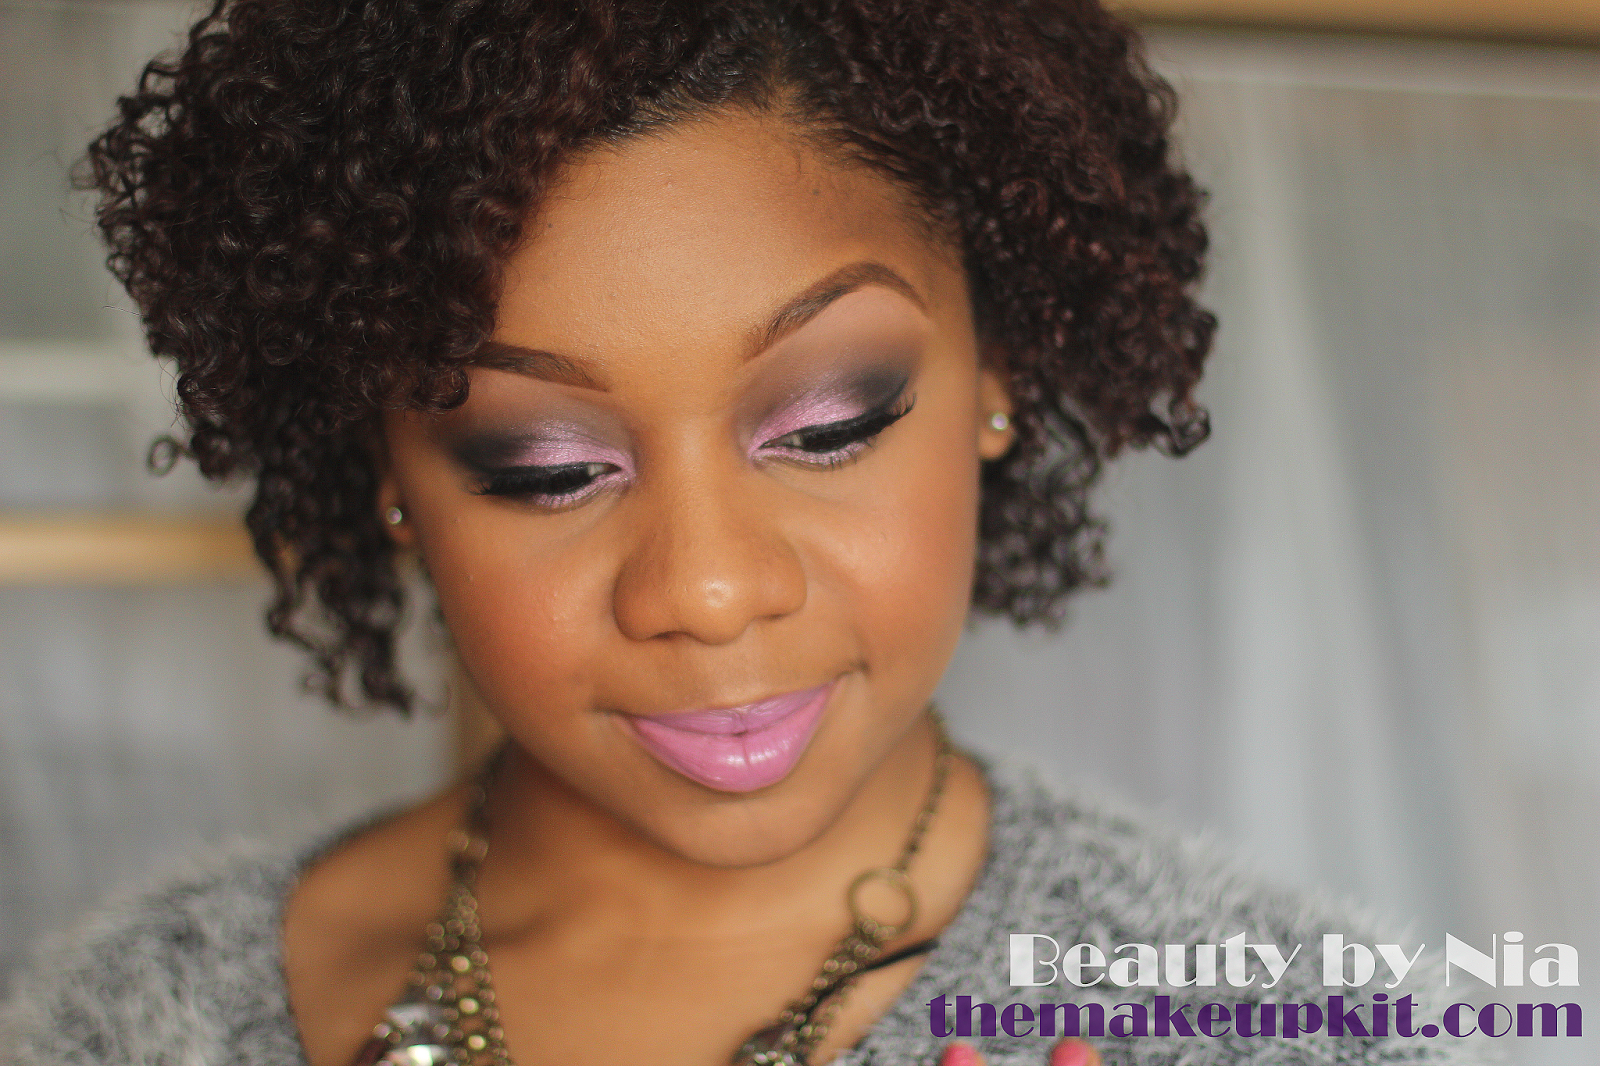 Pink and Black Smokey Eye with Lavender Lip 4